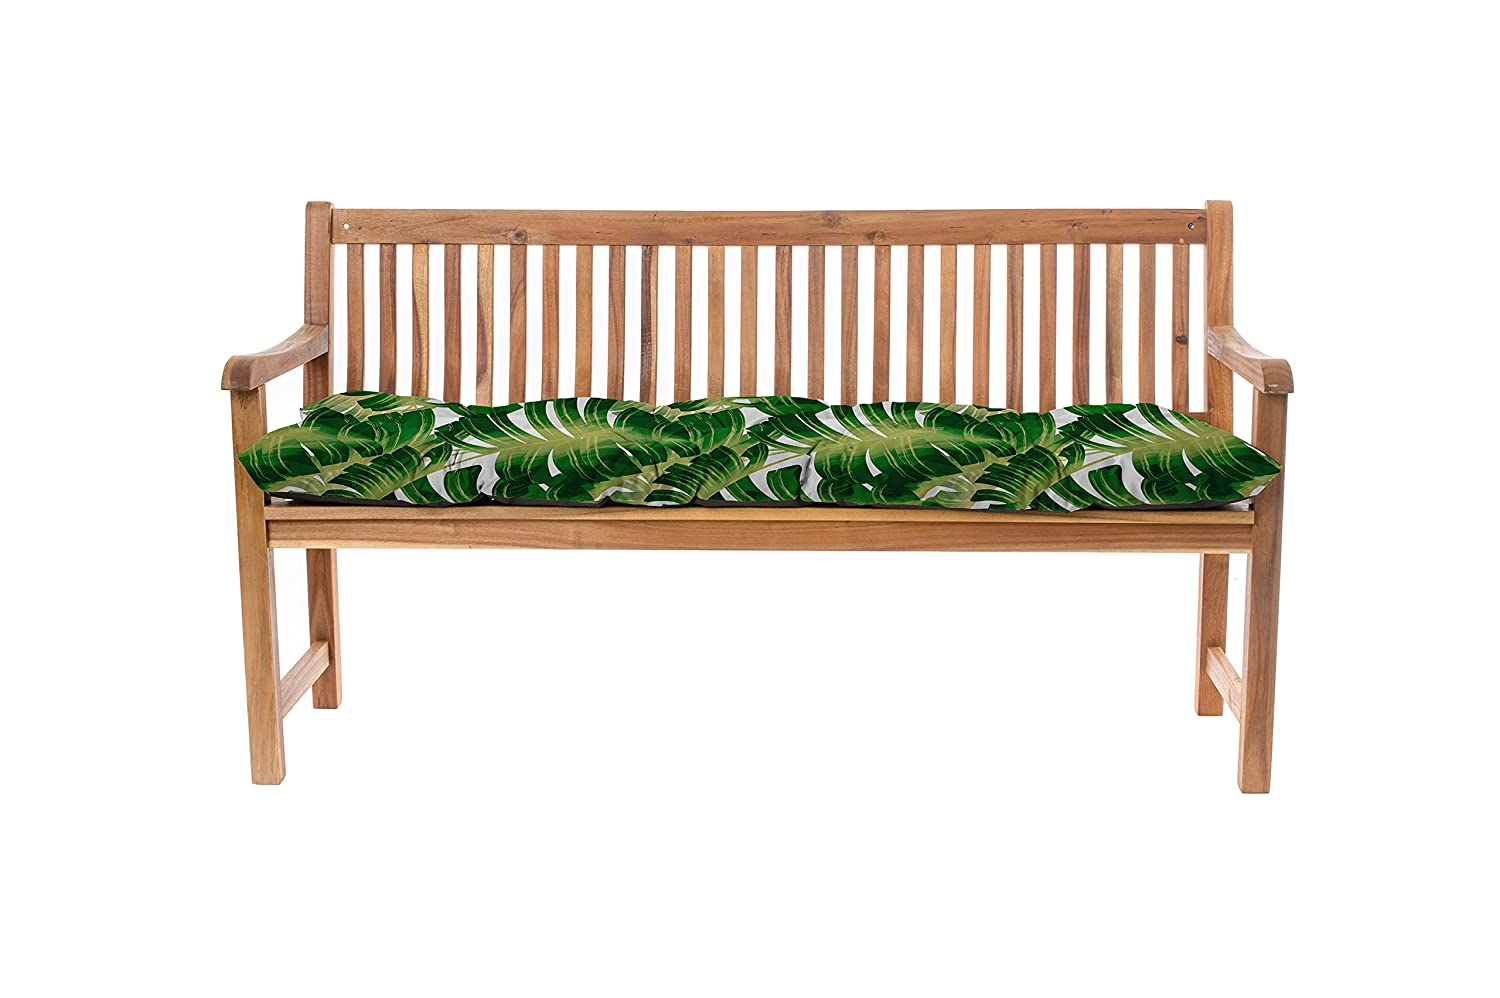 Gardenista Outdoor Garden 2 Seater Bench Cushion 110x45x7cm in Water Resistant Fabric (Palm). Made in the UK. Tufted Cushions Collection